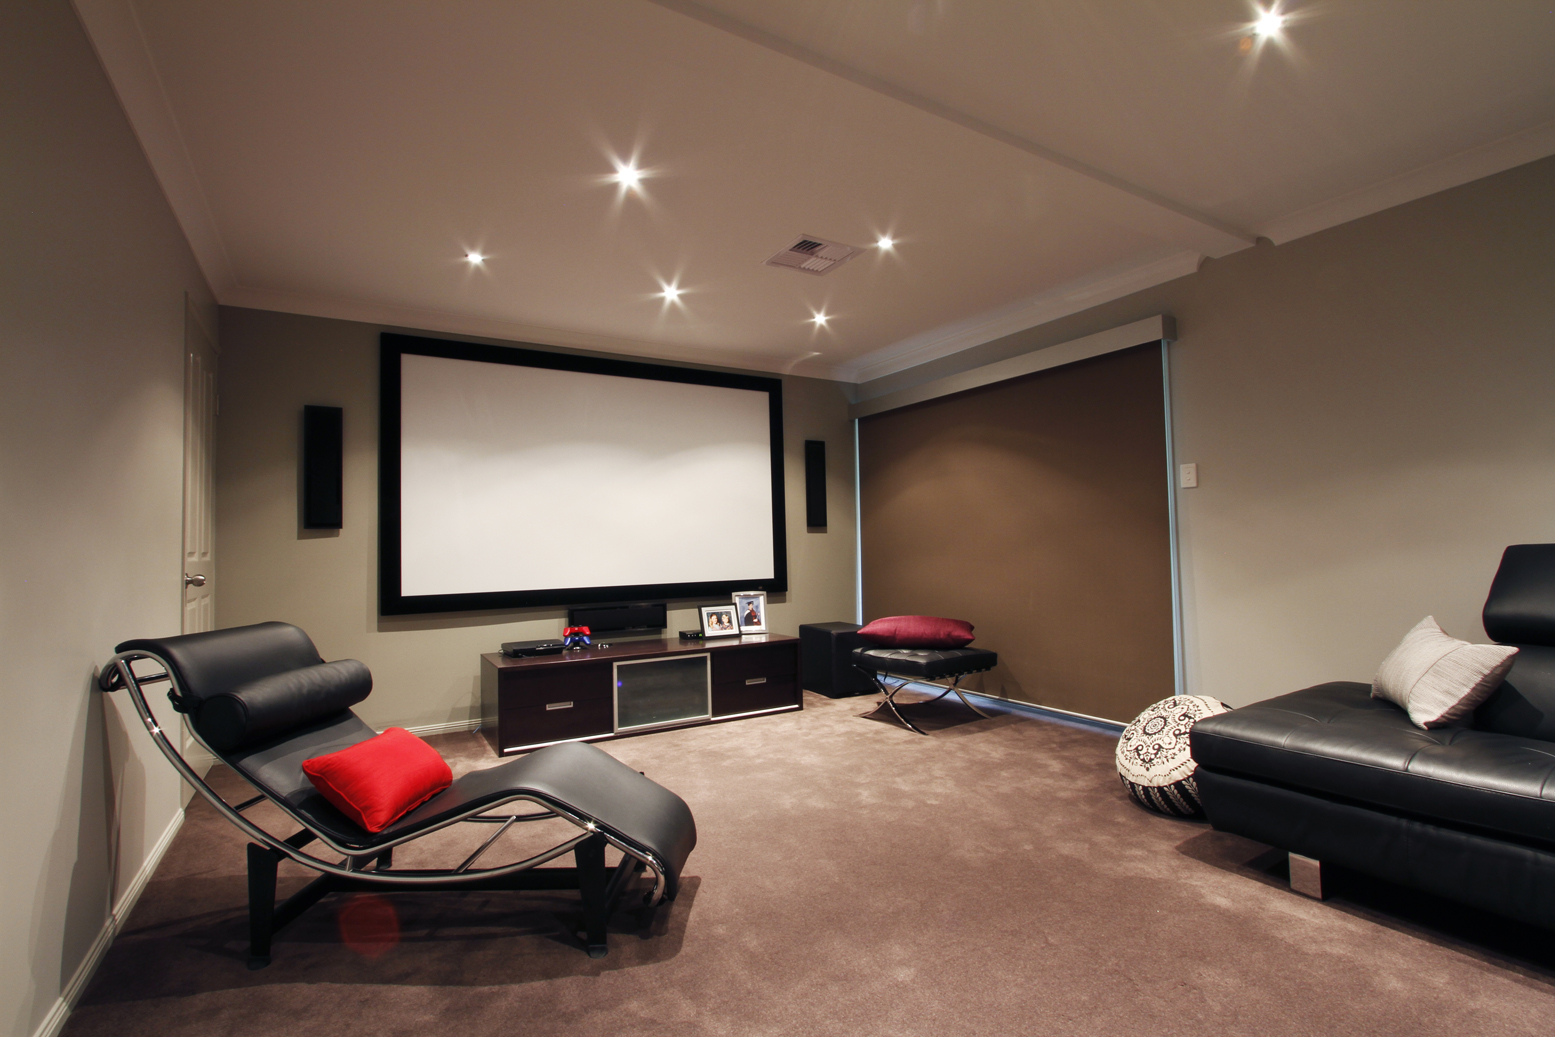 Home theatre room design